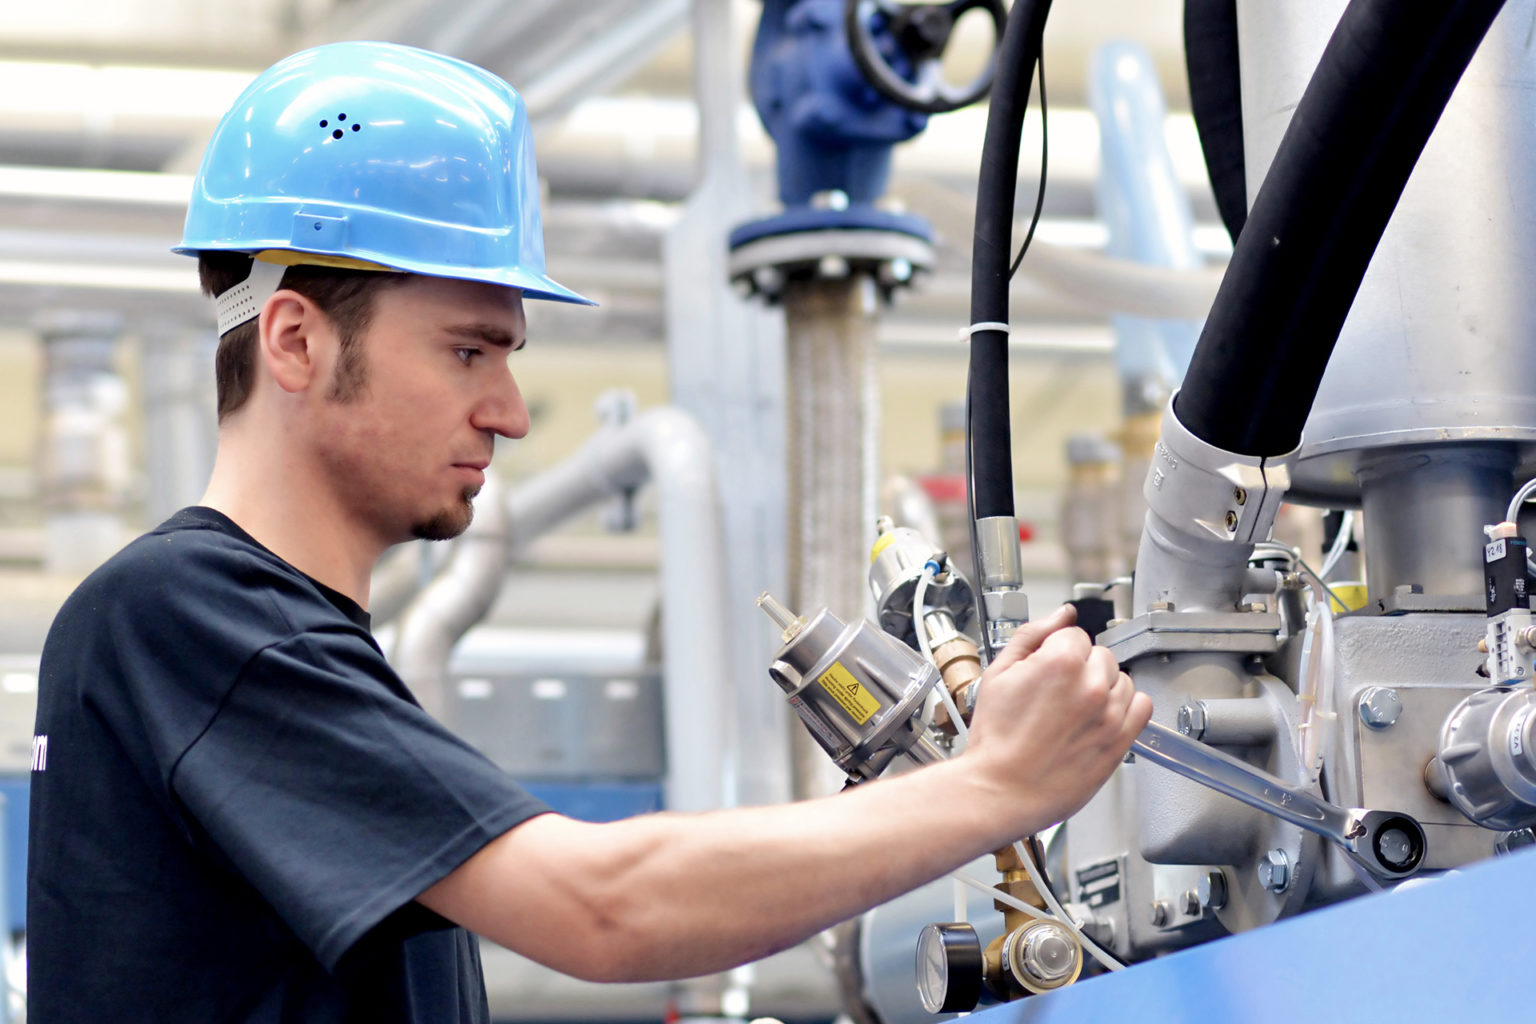 operator repairs a machine in an industrial plant with tools - pneumatics and hydraulics